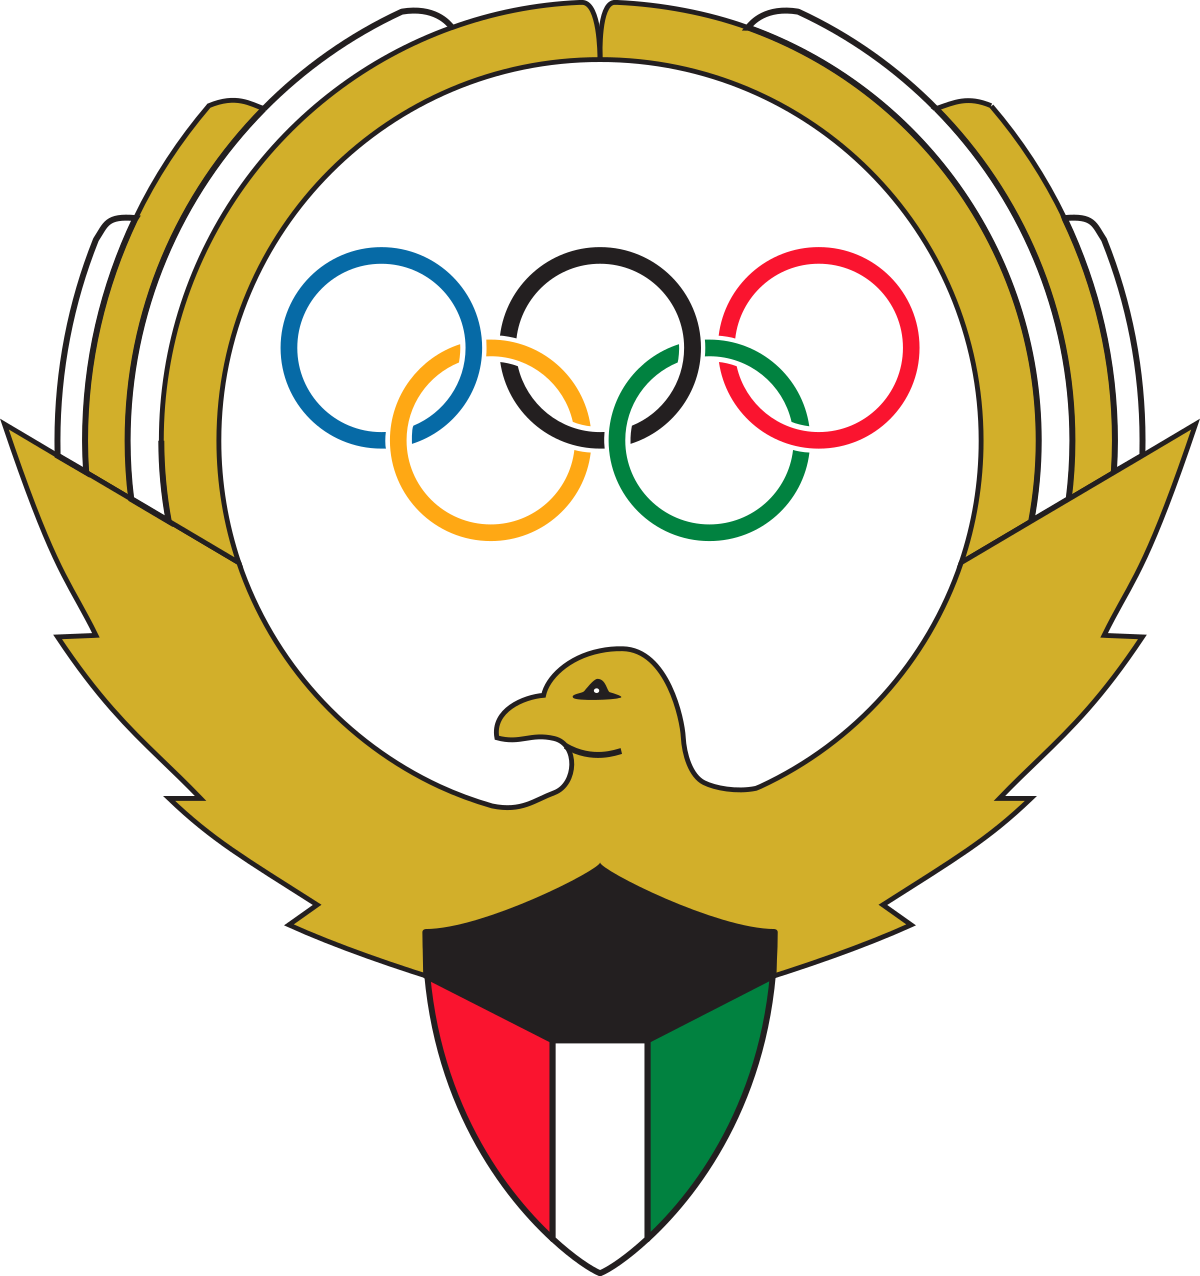 Kuwait_Olympic_Committee_logo_svg